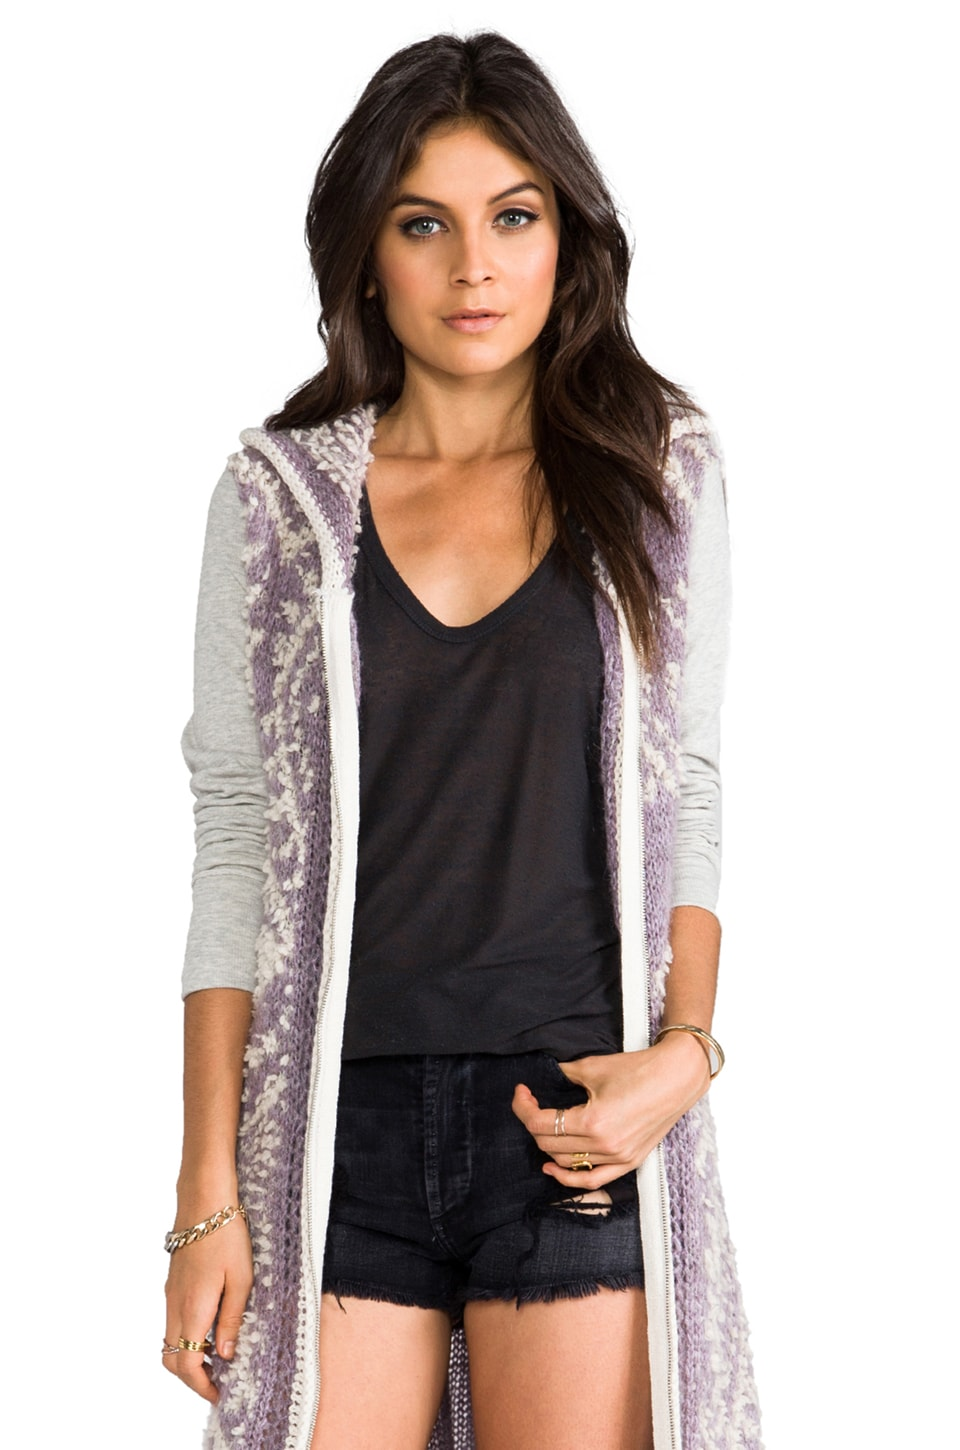 Free People White Moon Cardi in Lilac